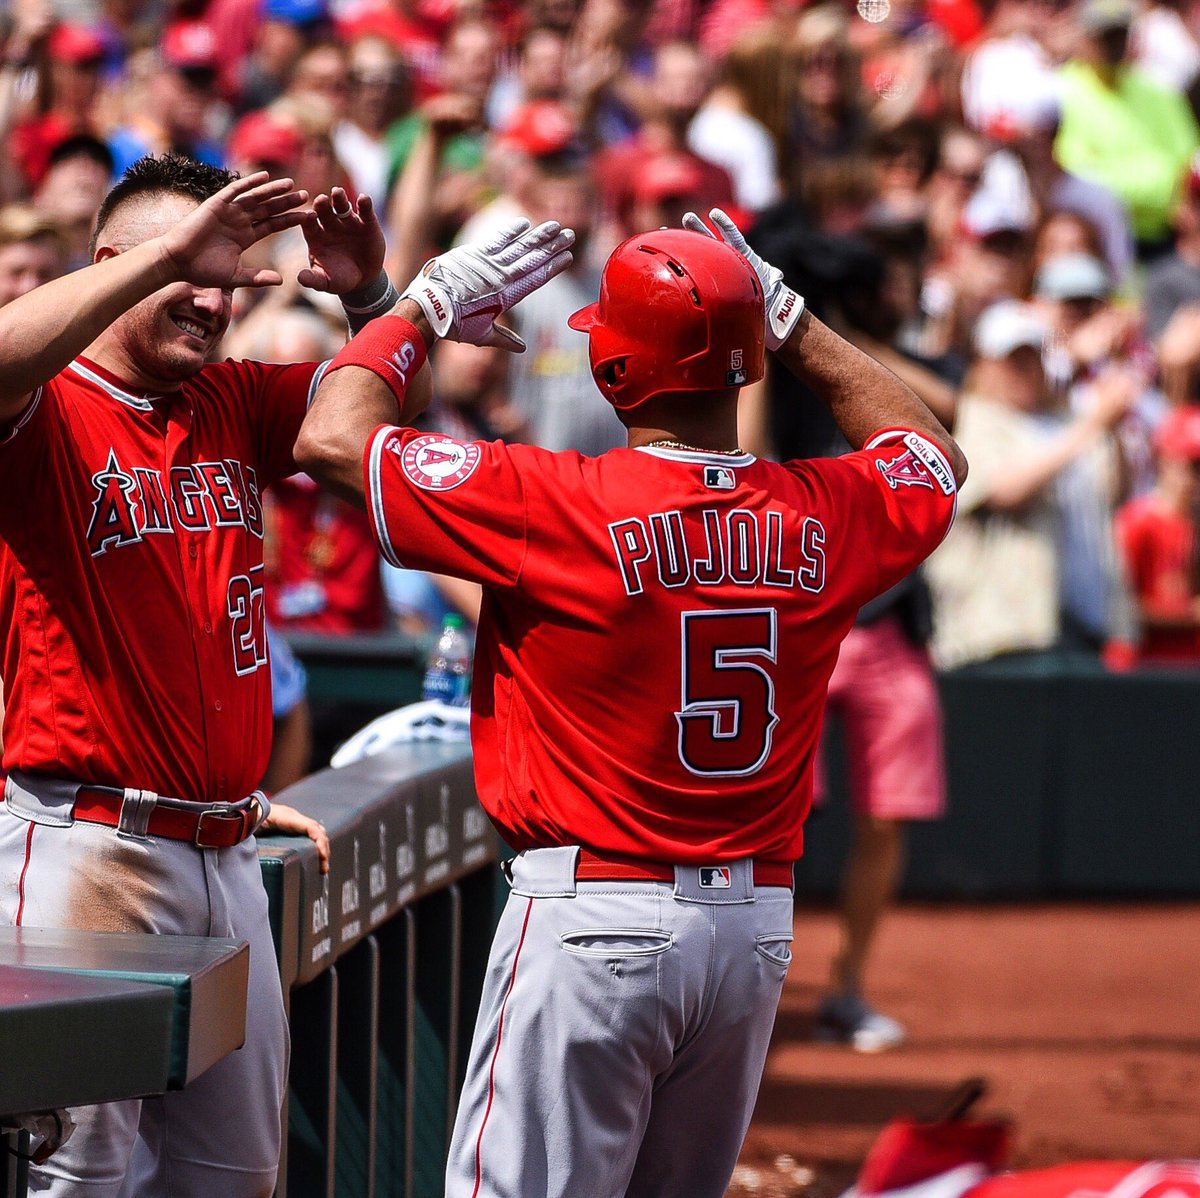 There's only one Albert Pujols. What a privilege it's been these last 3 days in St. Louis. #THEMACHINE!!